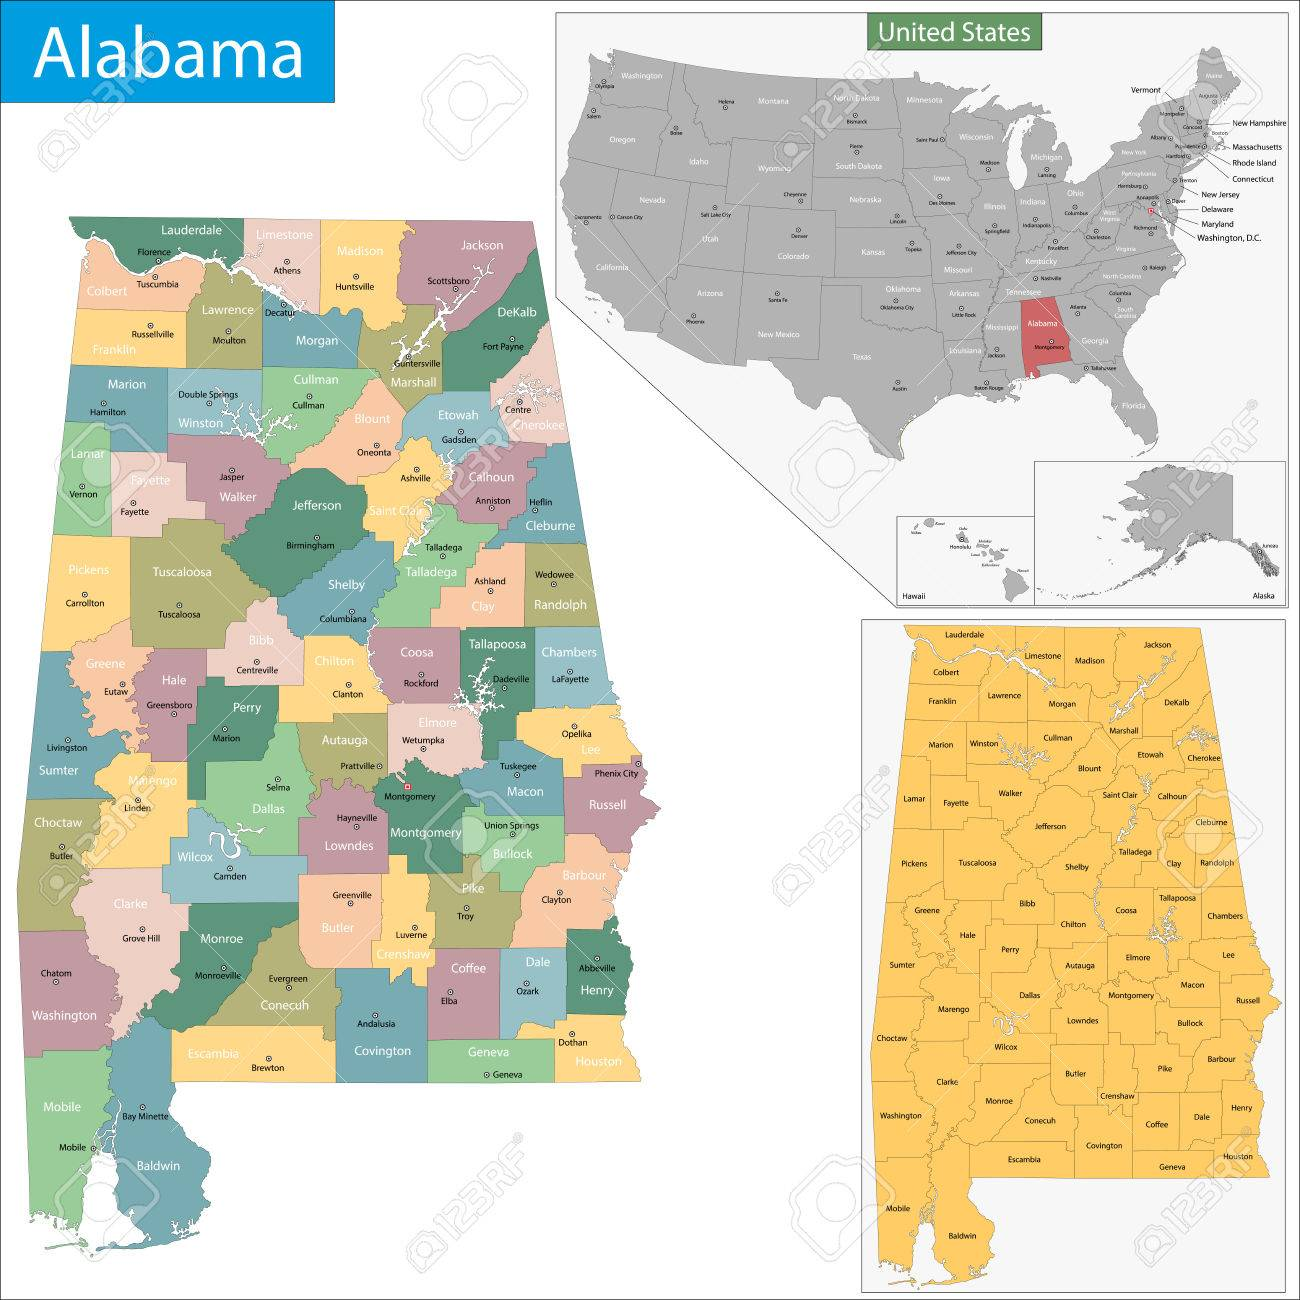 Alabama State Map By County.Map Of Alabama State Designed In Illustration With The Counties